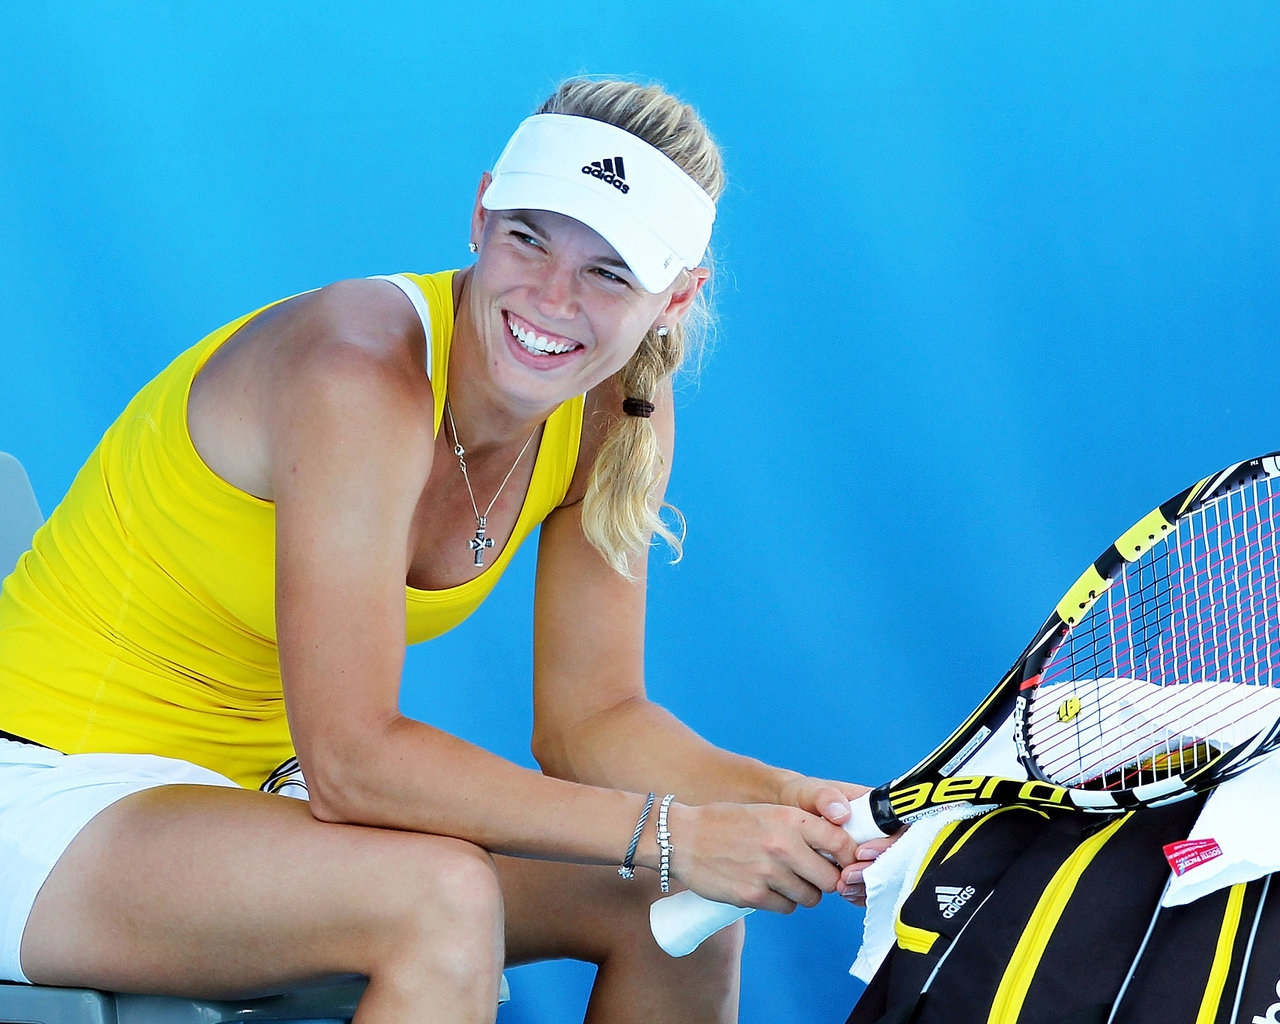 Laughing Caroline Wozniacki for 1280 x 1024 resolution